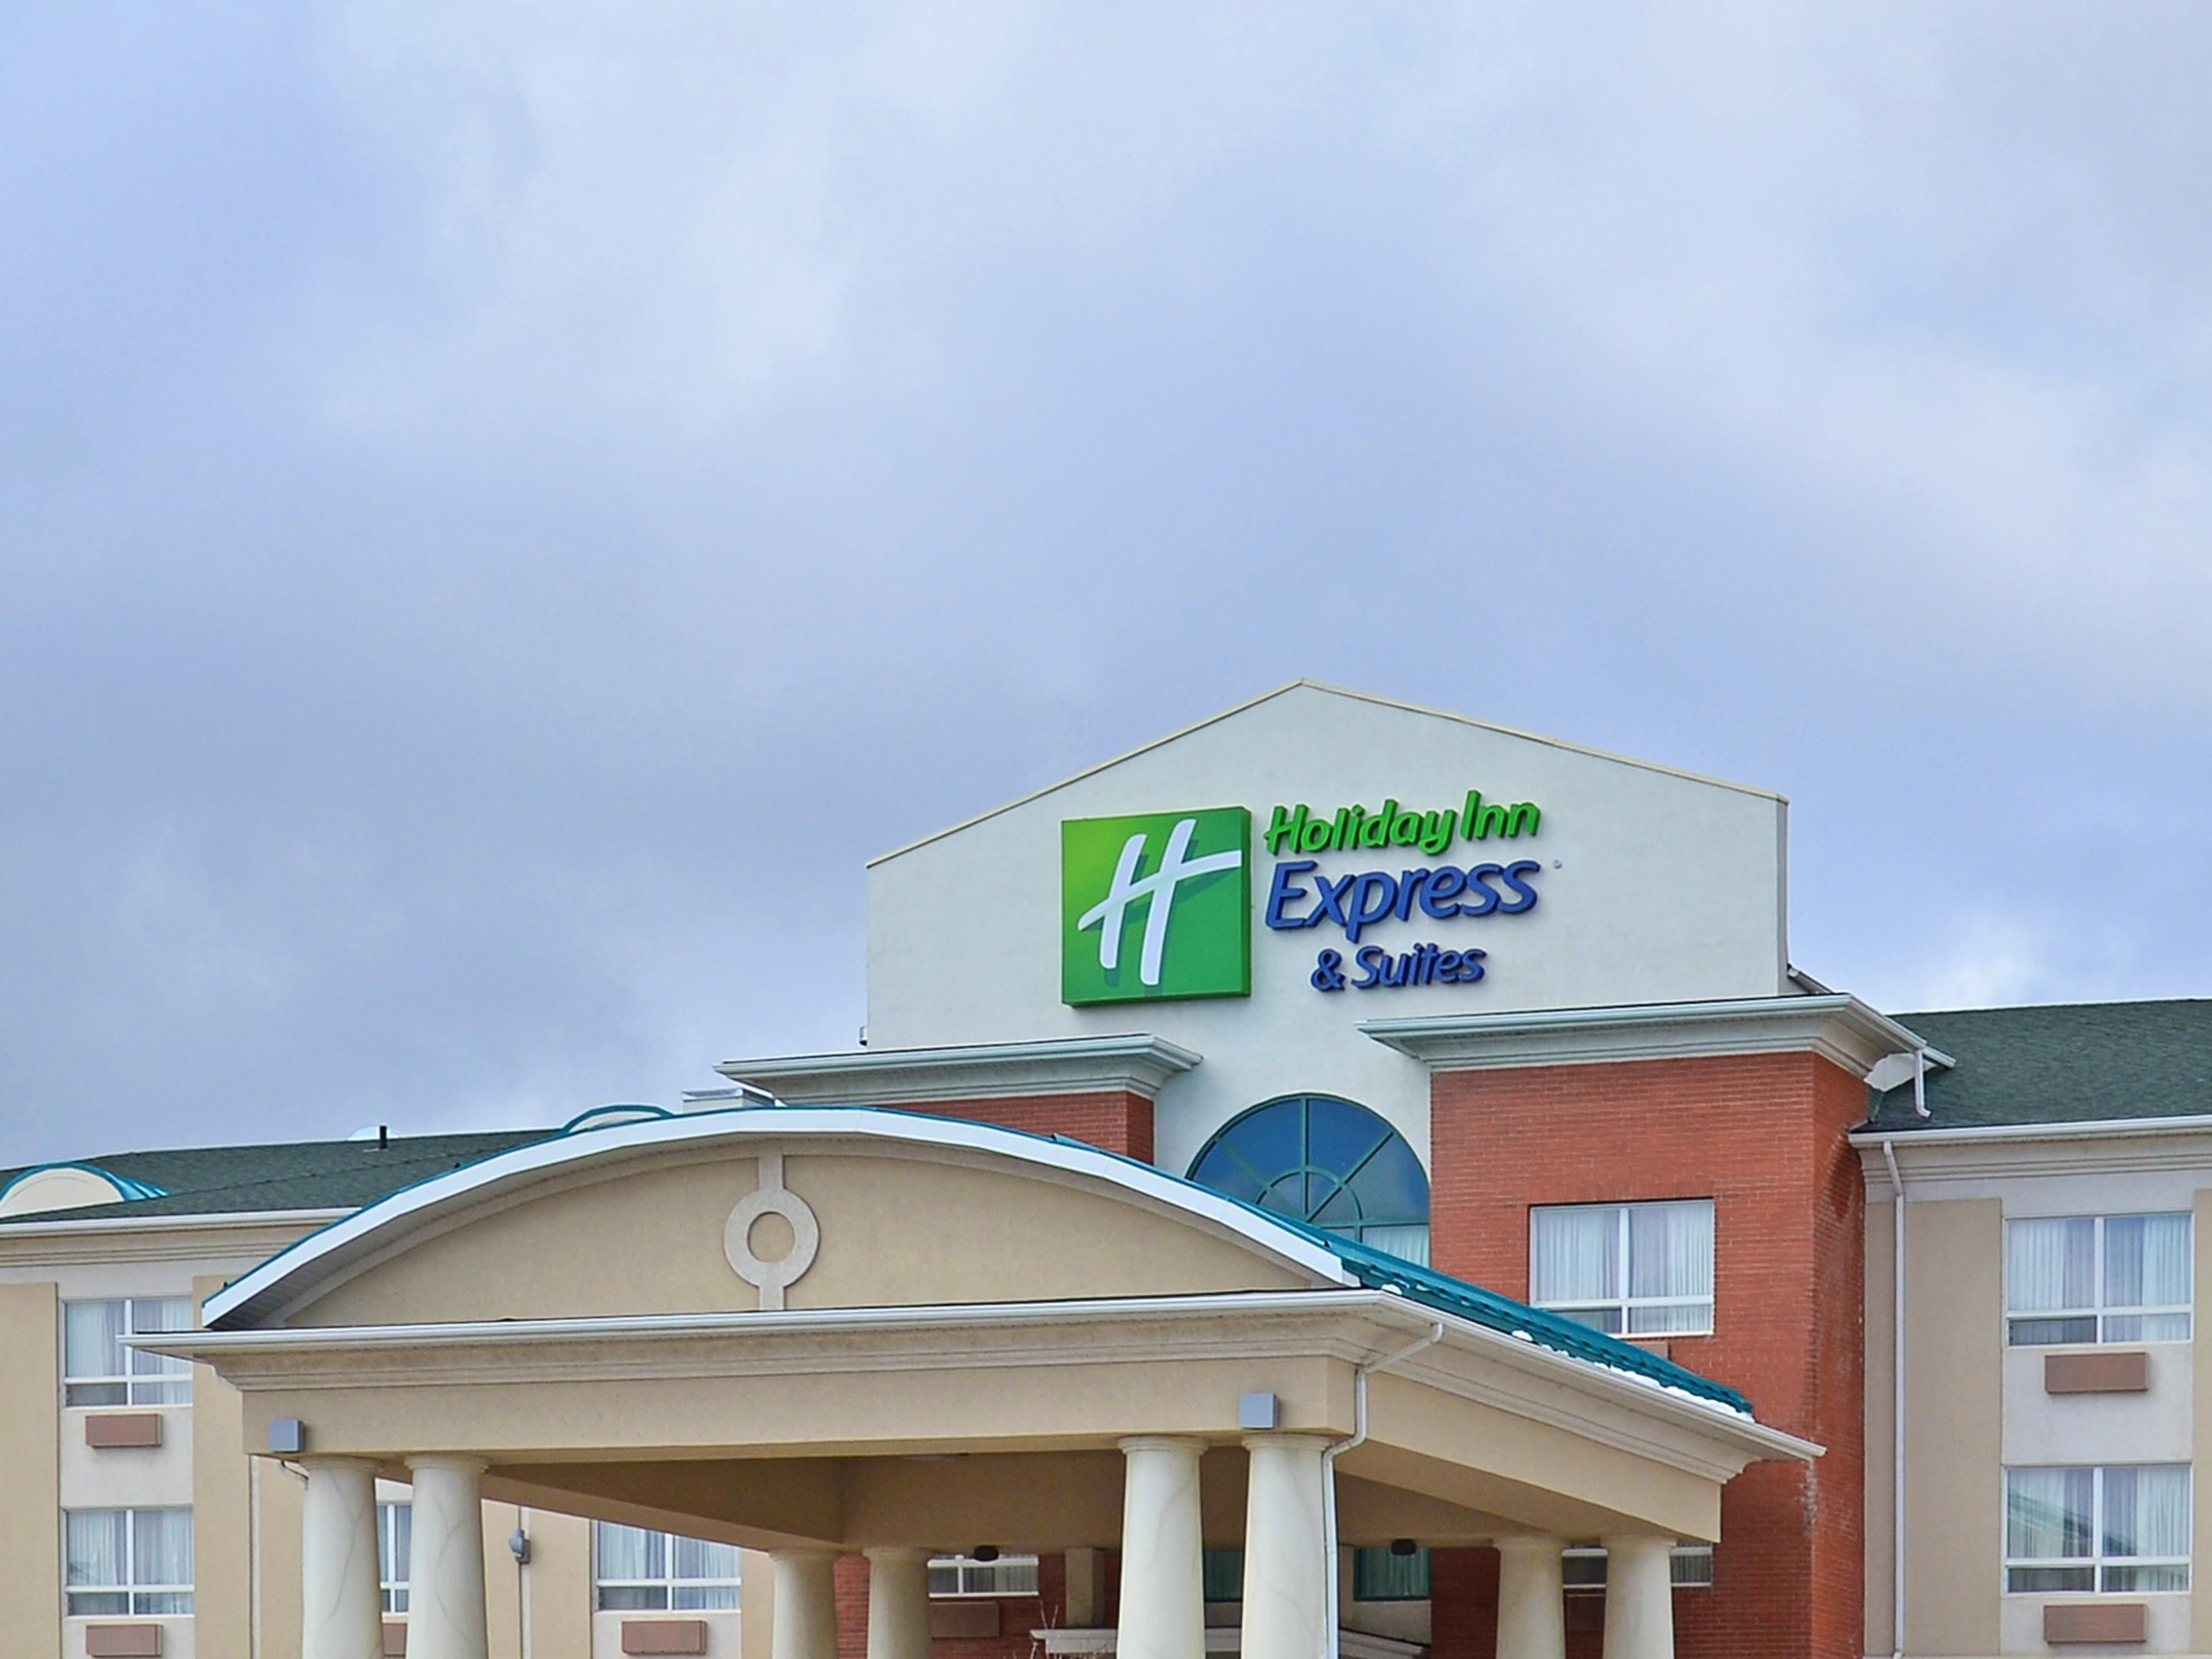 Come on in!  The Holiday Inn Express & Suites is ready for you!